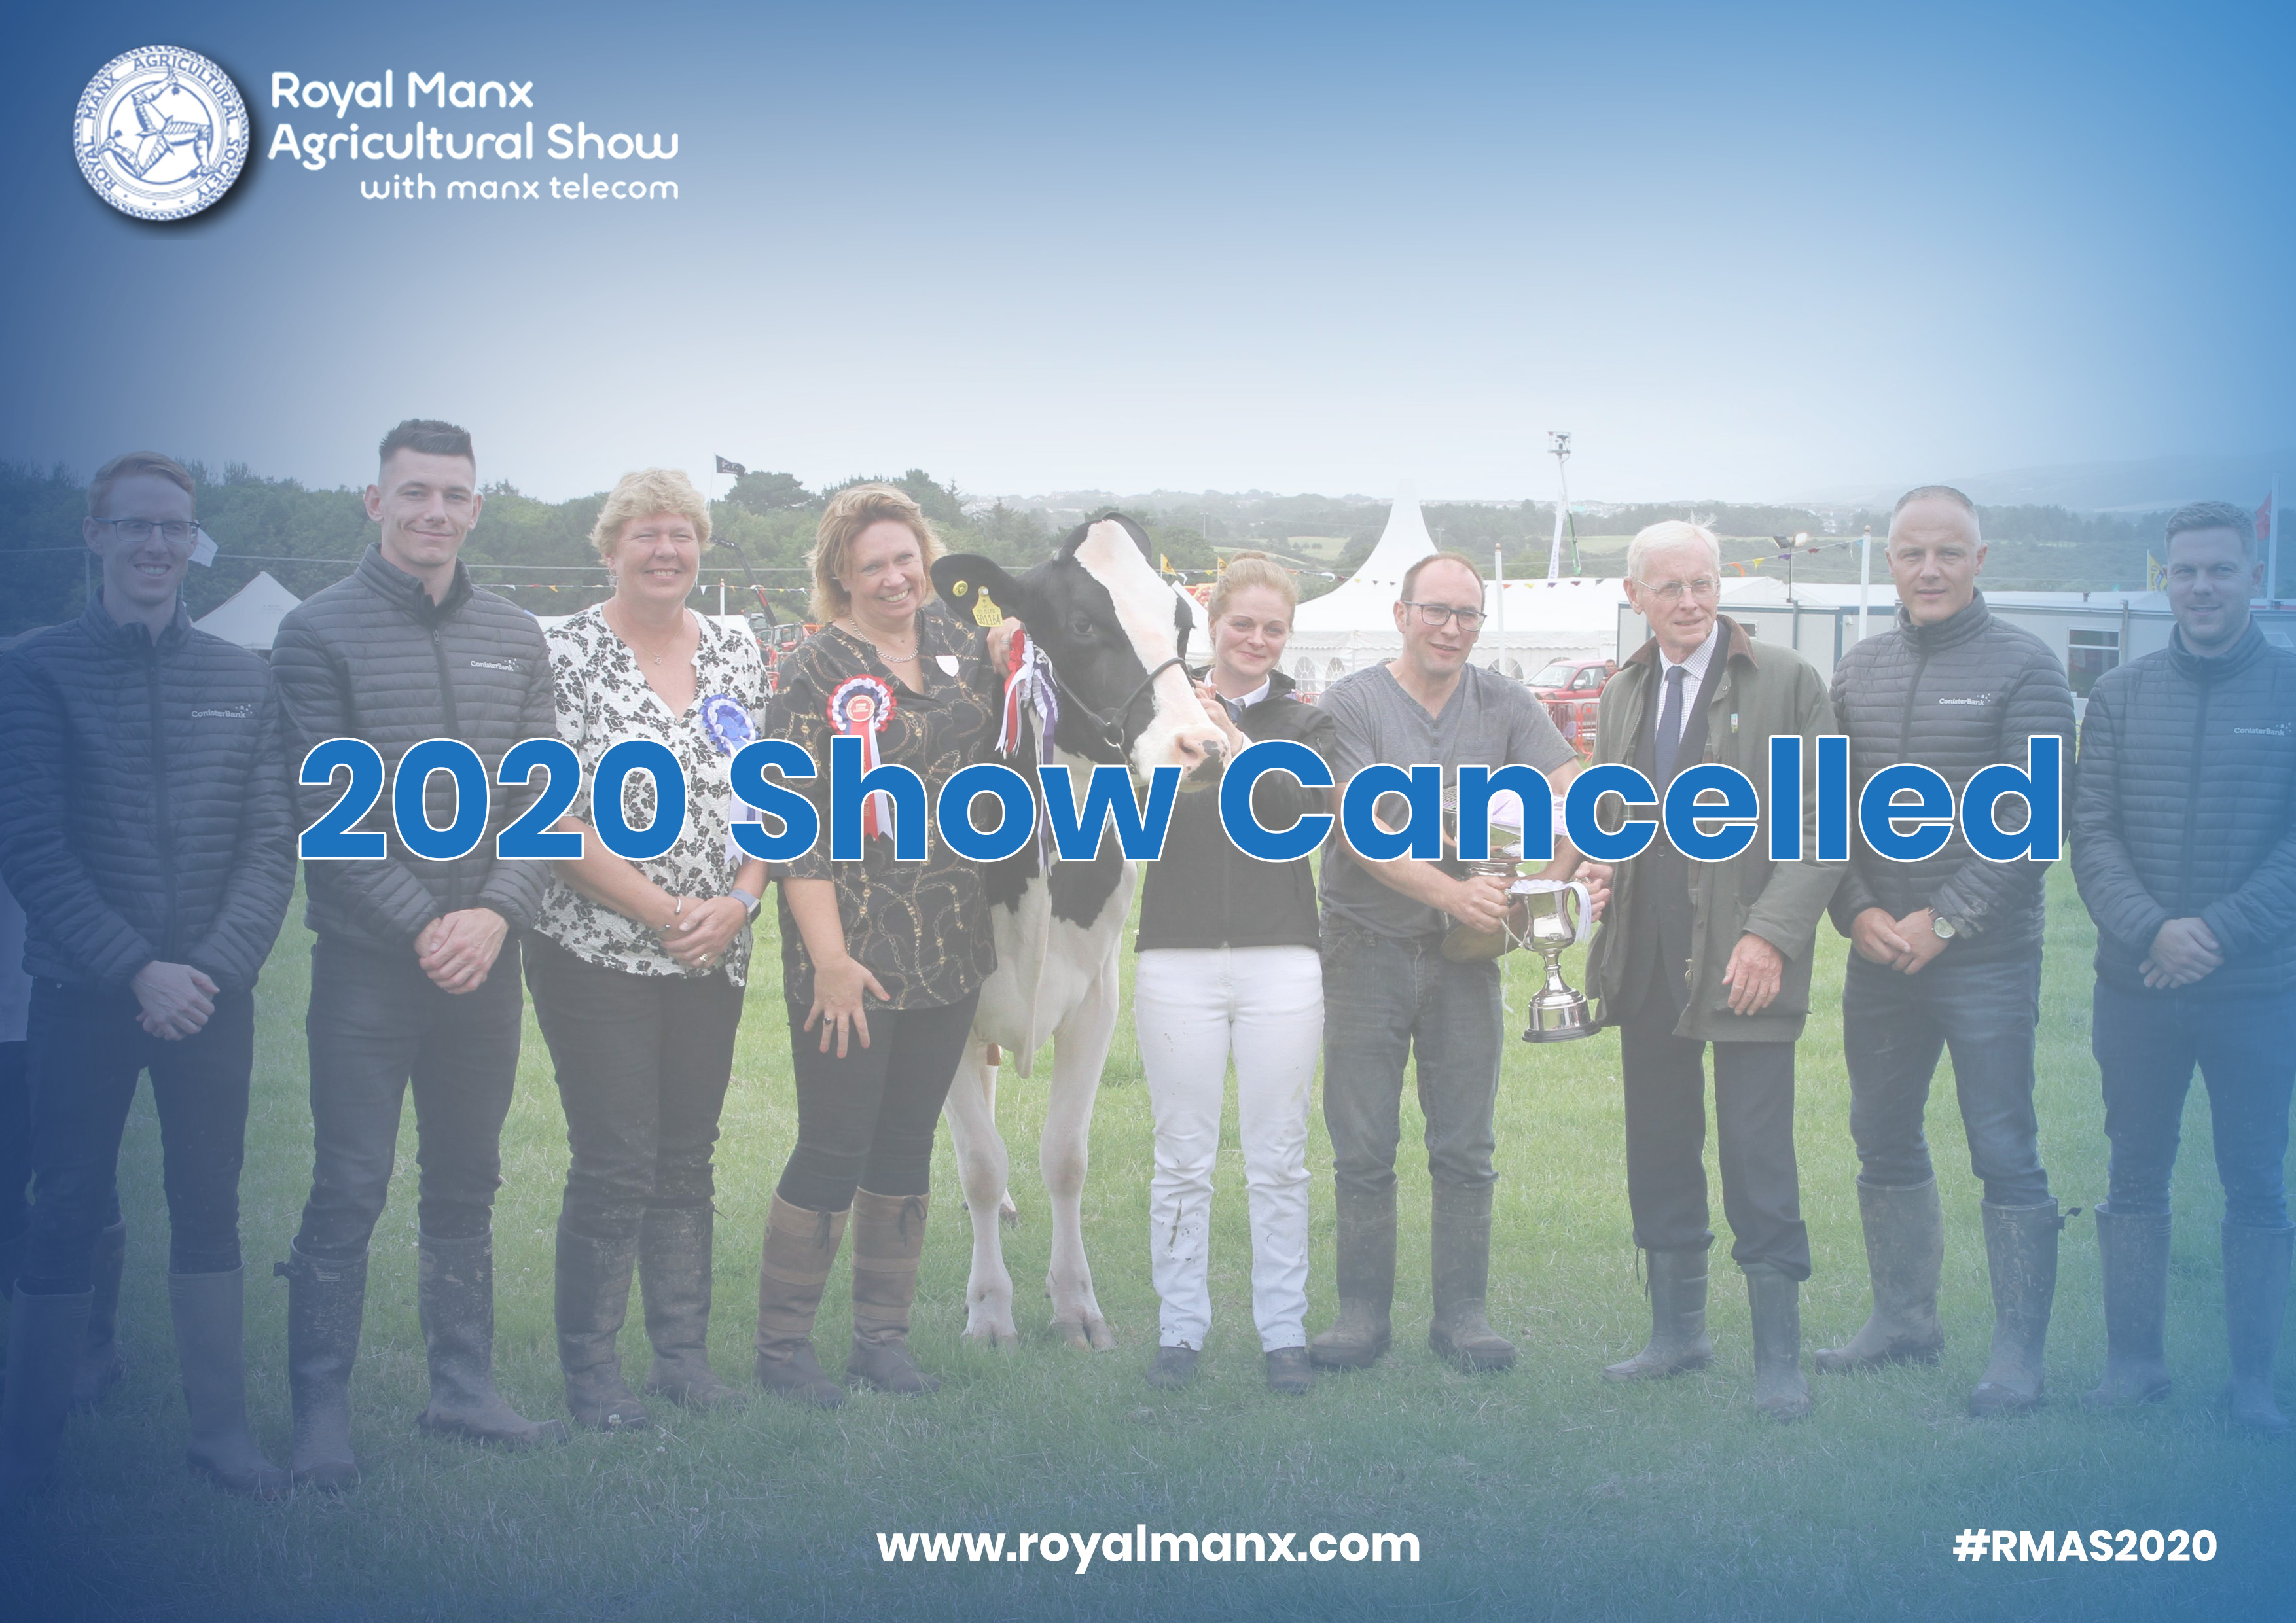 2020 Show Cancelled